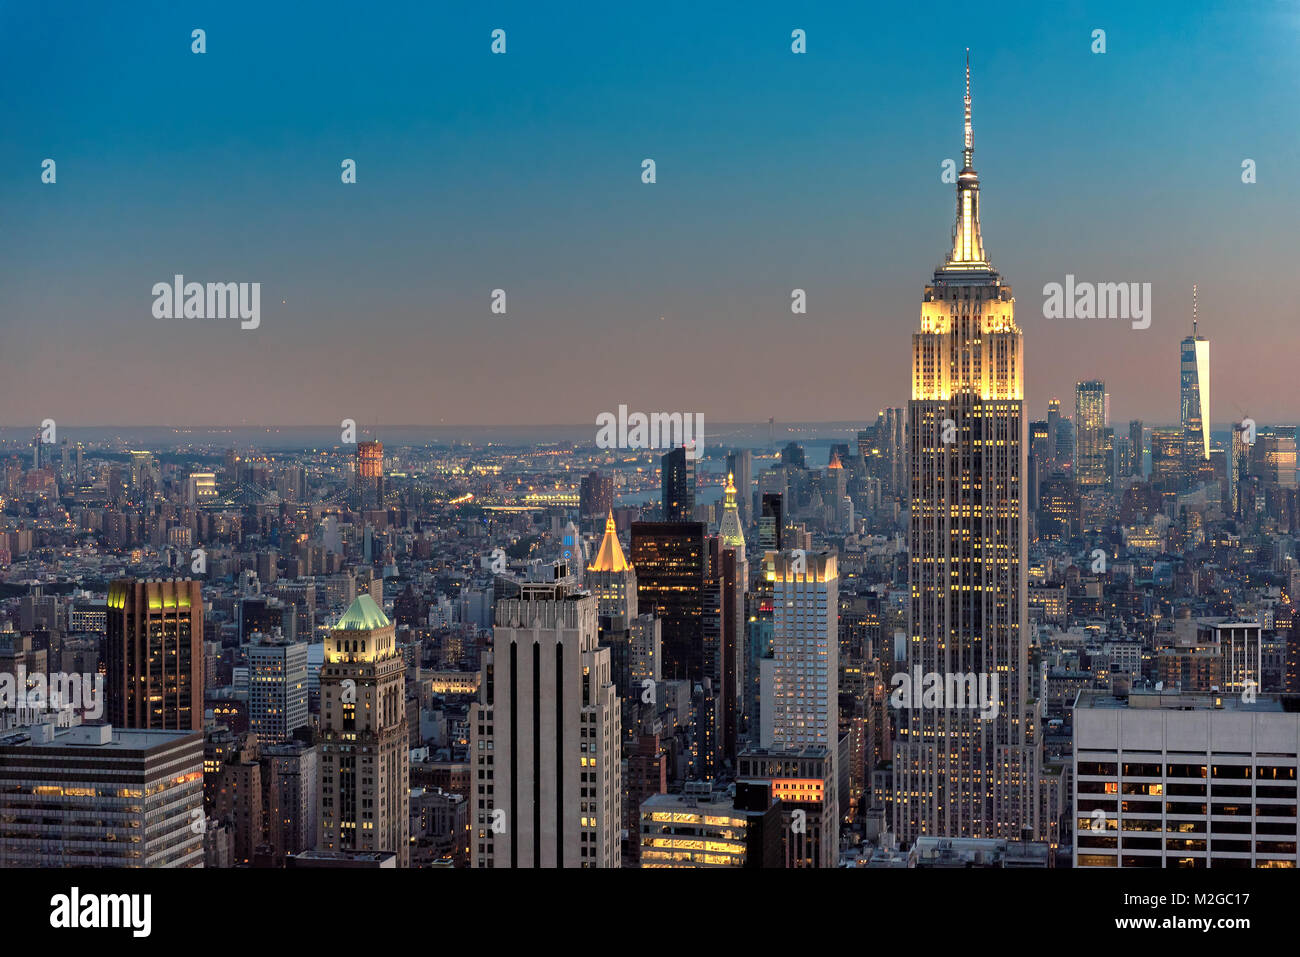 New York City Skyline im Sonnenuntergang Stockbild